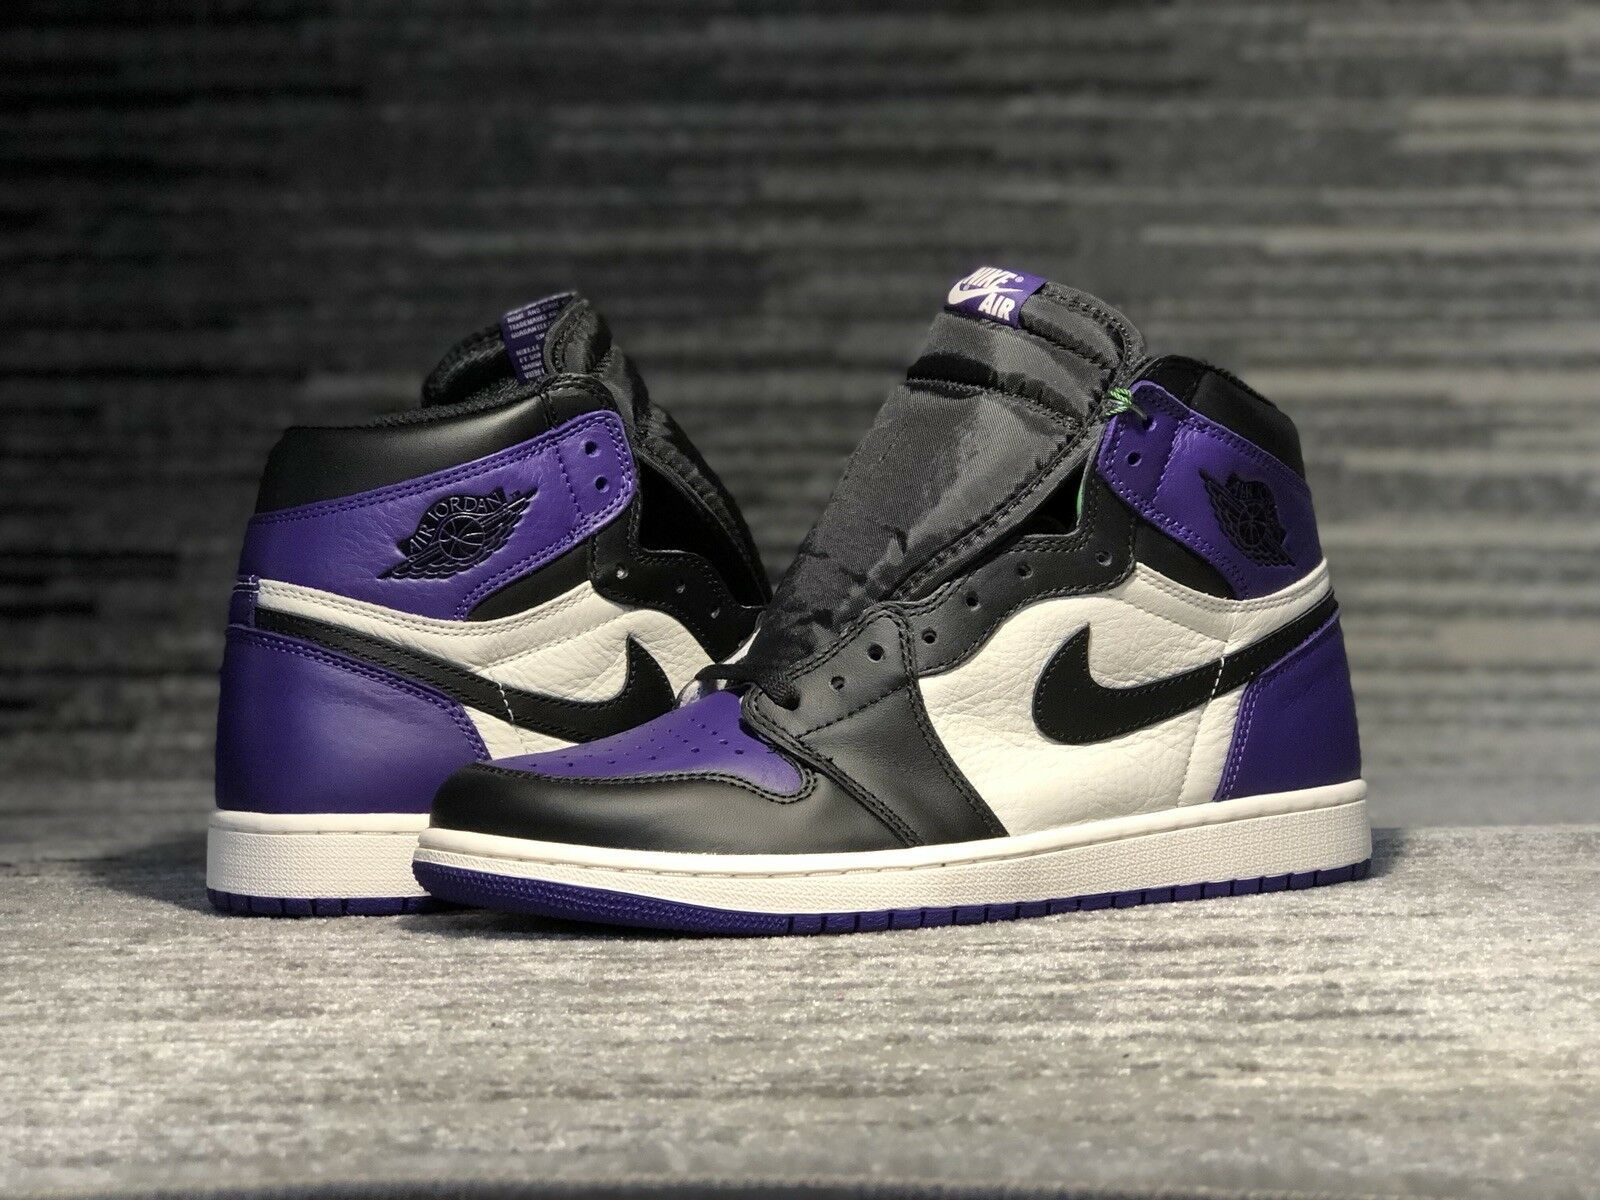 Nike Air Jordan 1 OG Court Purple Retro High size 10.5 DS Brand New 555088-501